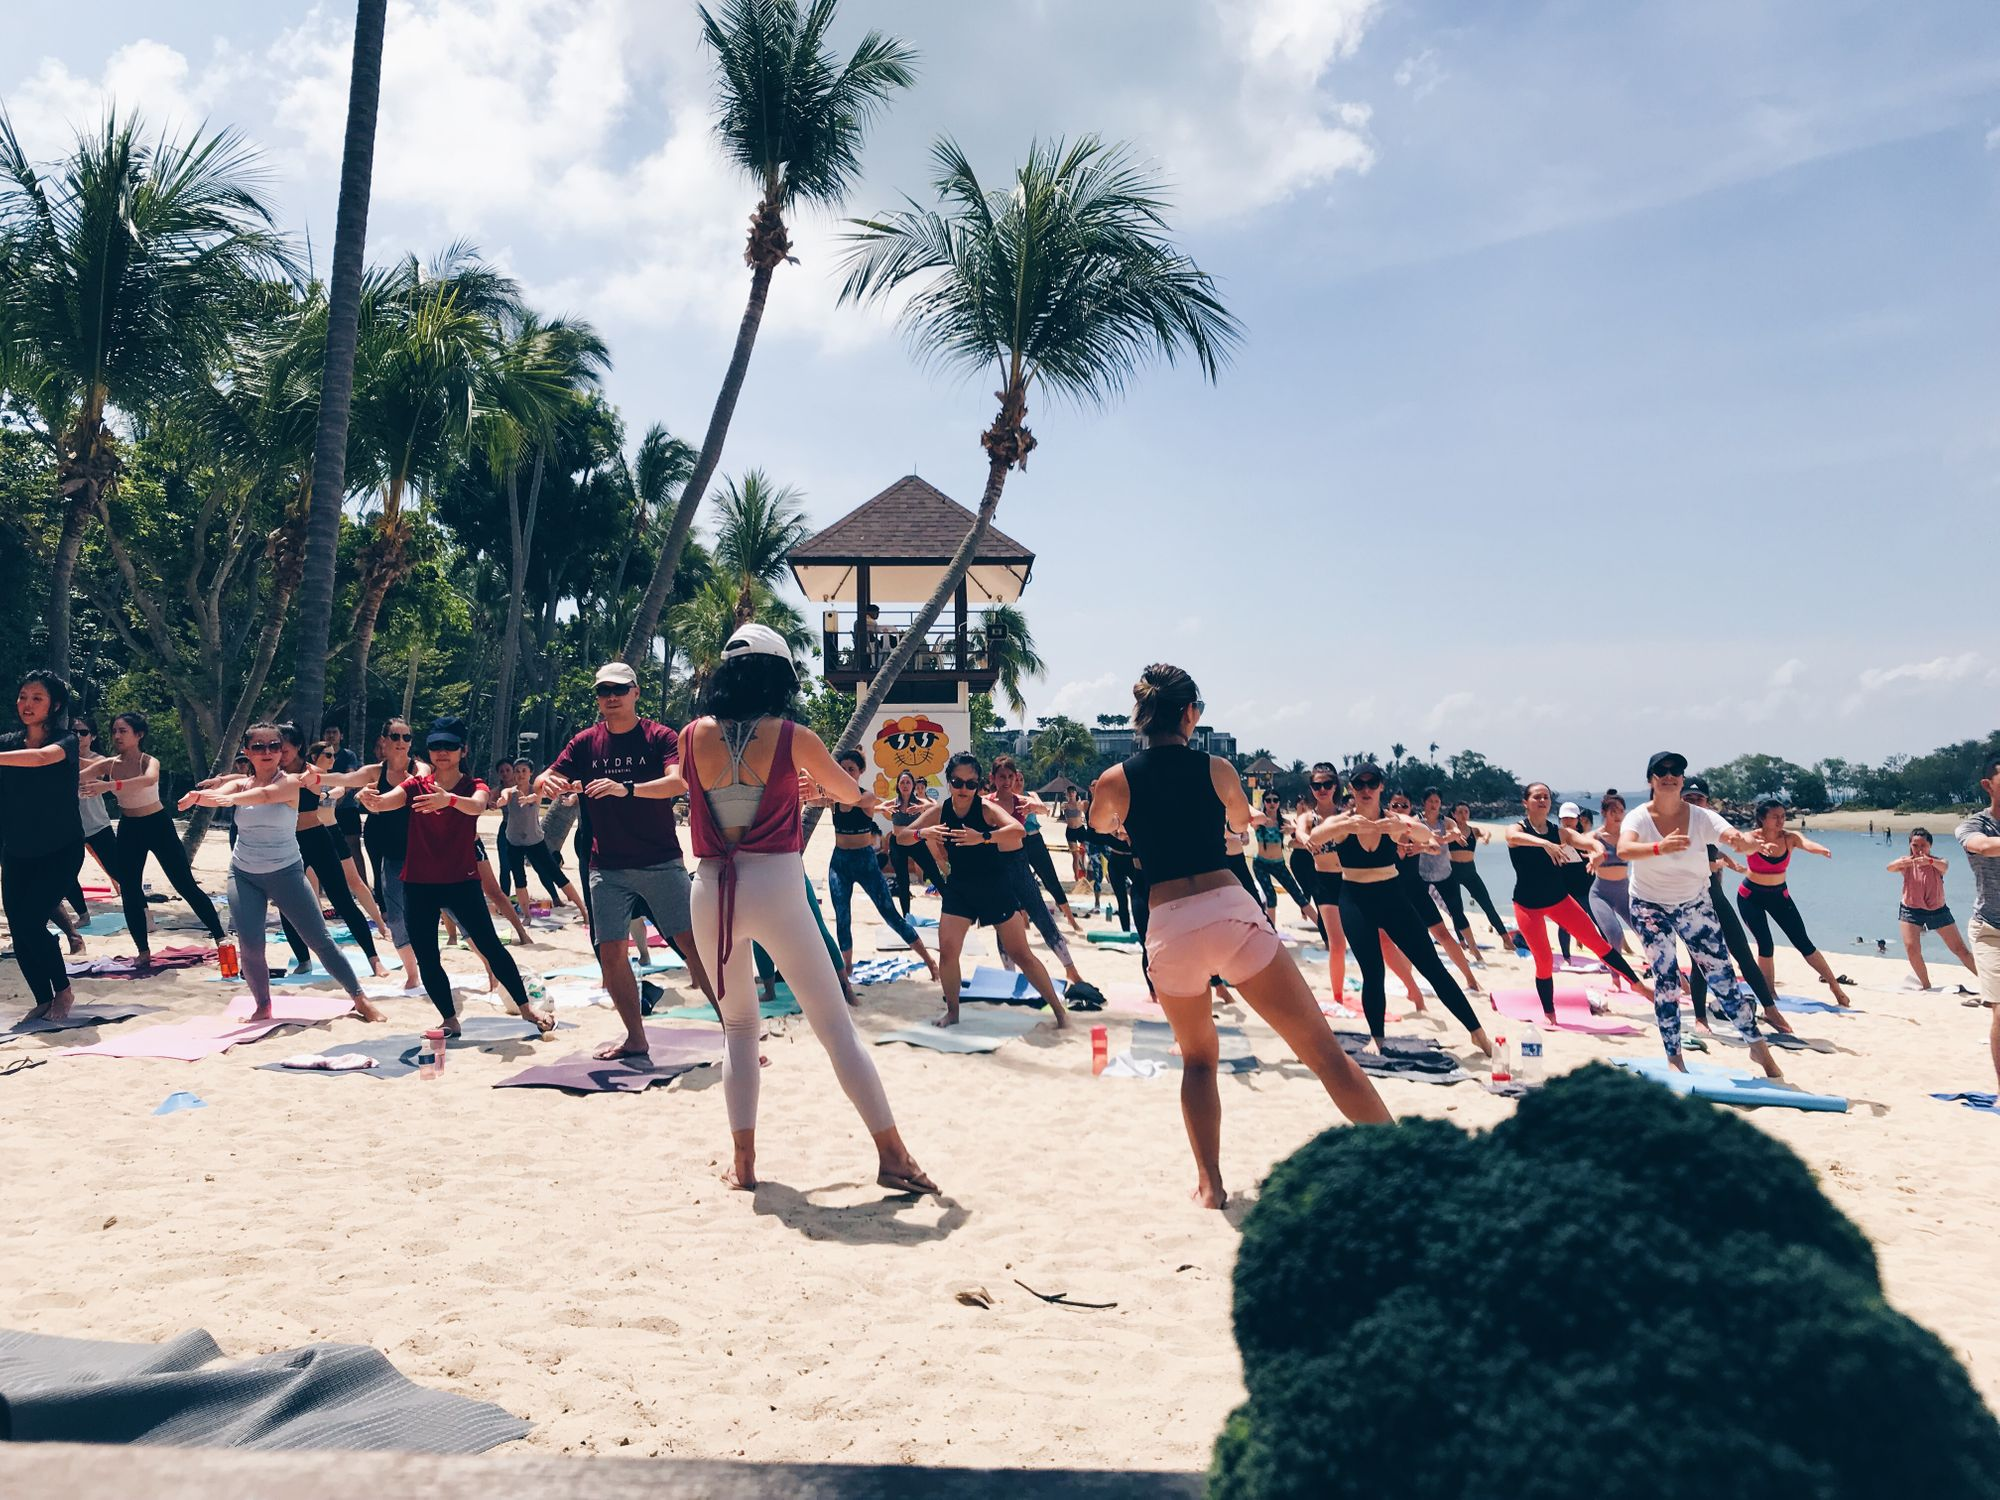 bootcamps & booze - the beach edition